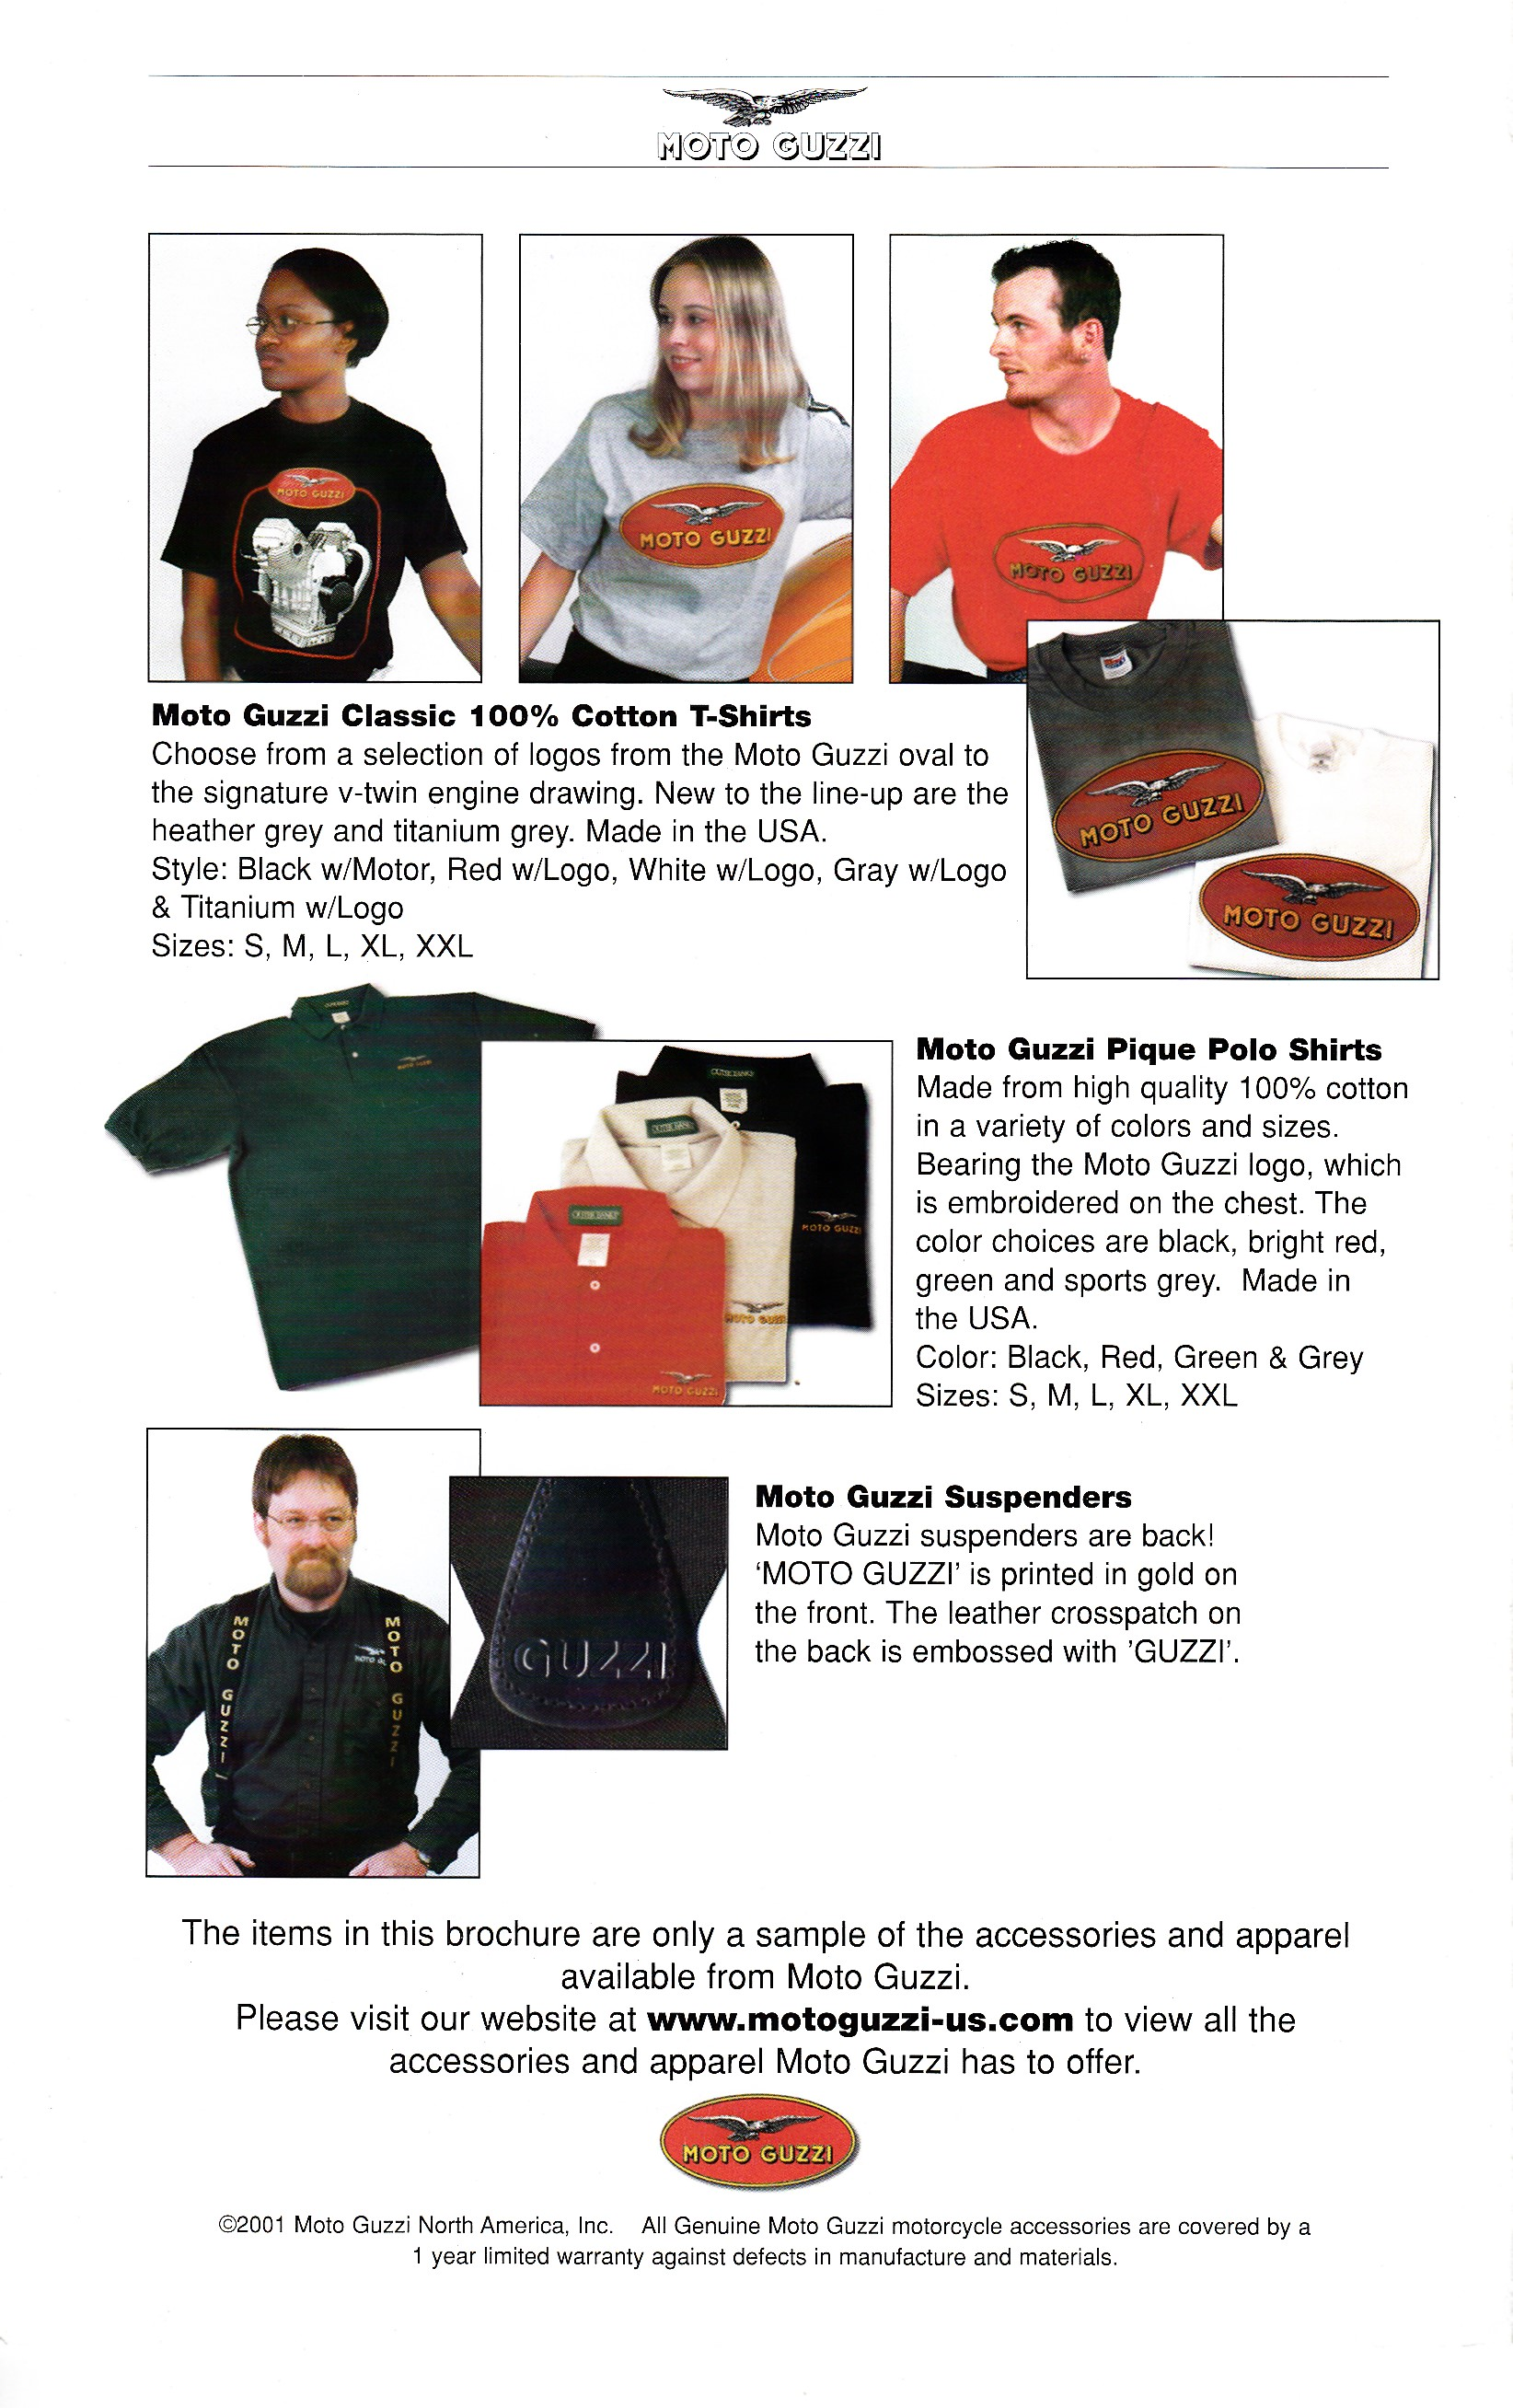 Brochure - Moto Guzzi Accessories and apparel 2001